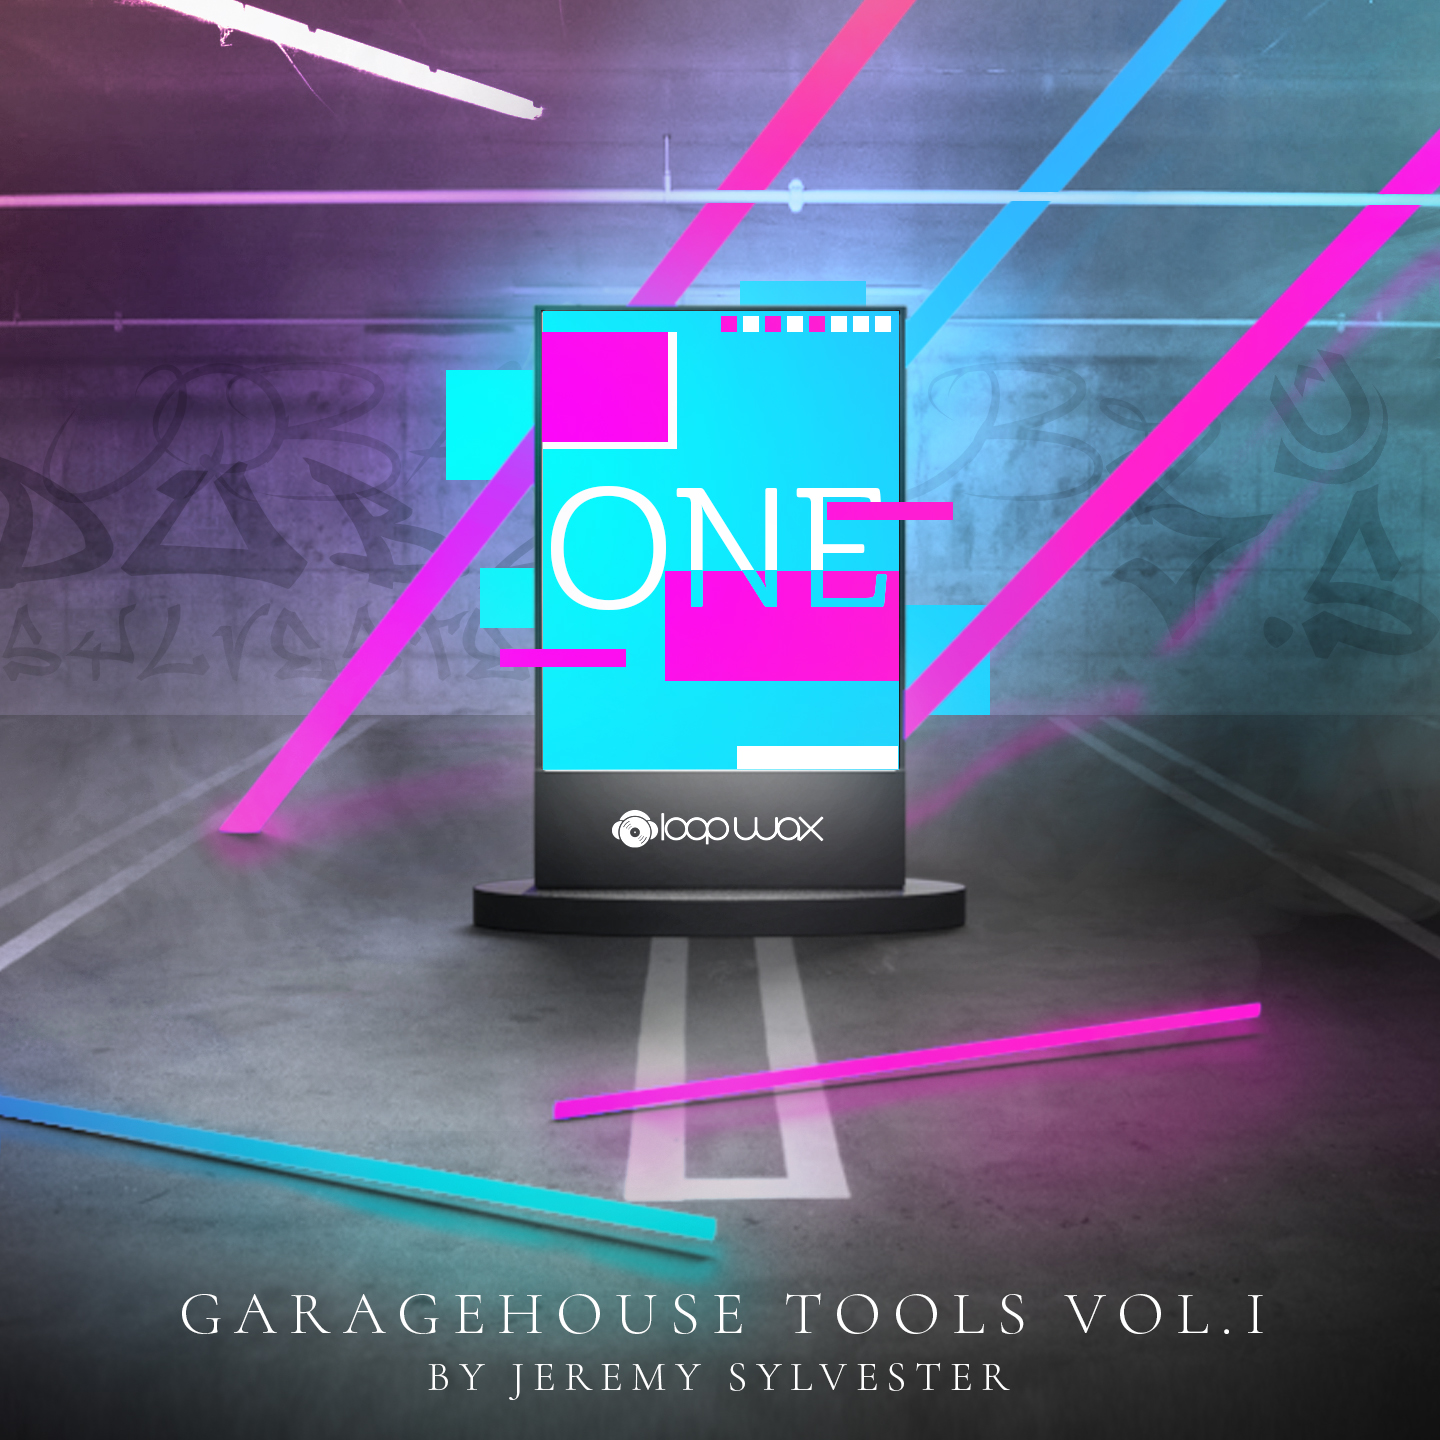 Garage house tools vol 1